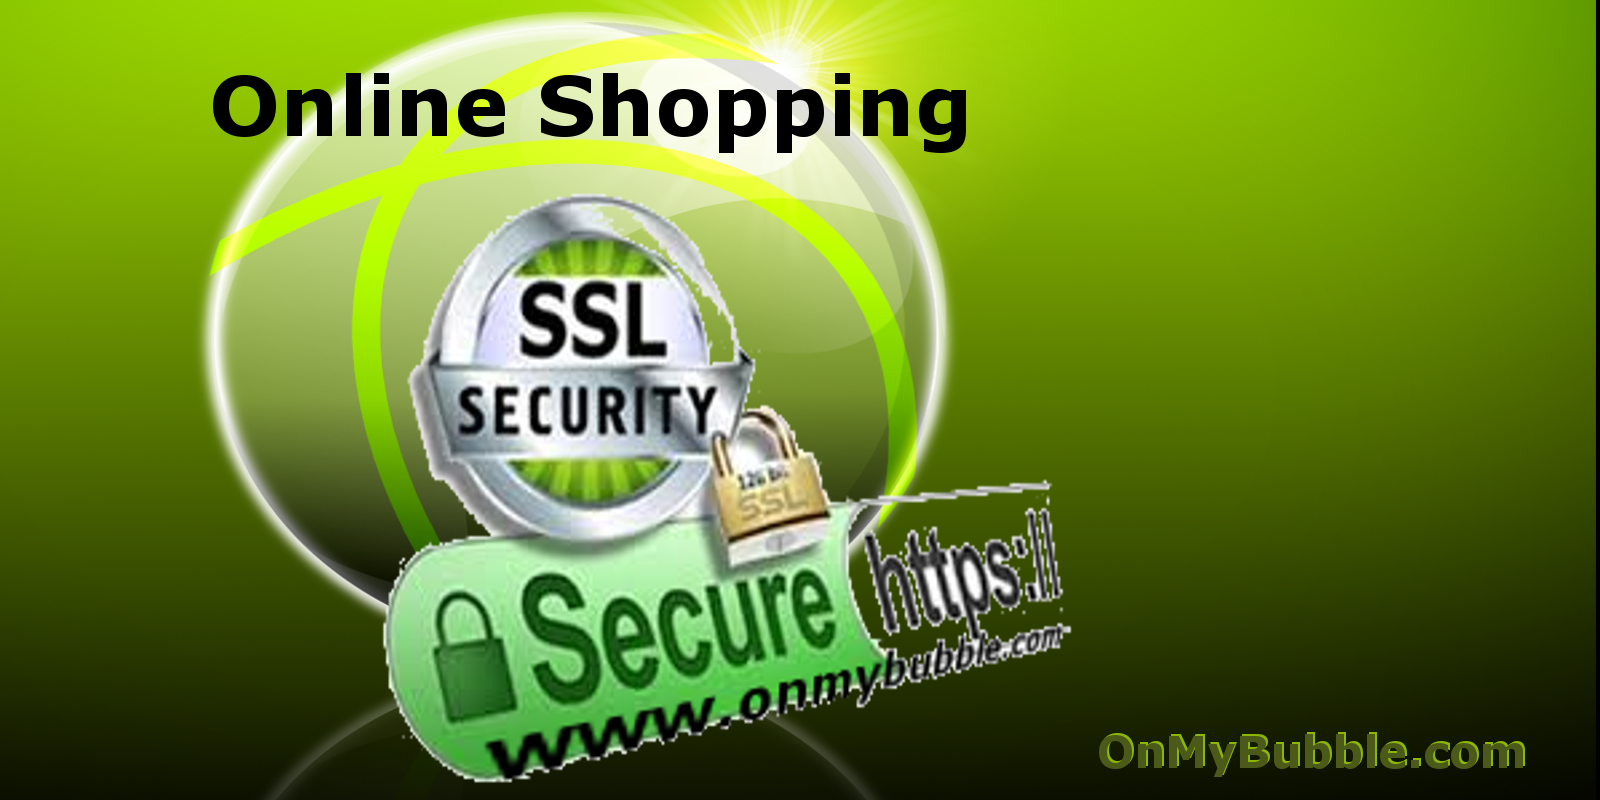 Secure Online Store Image